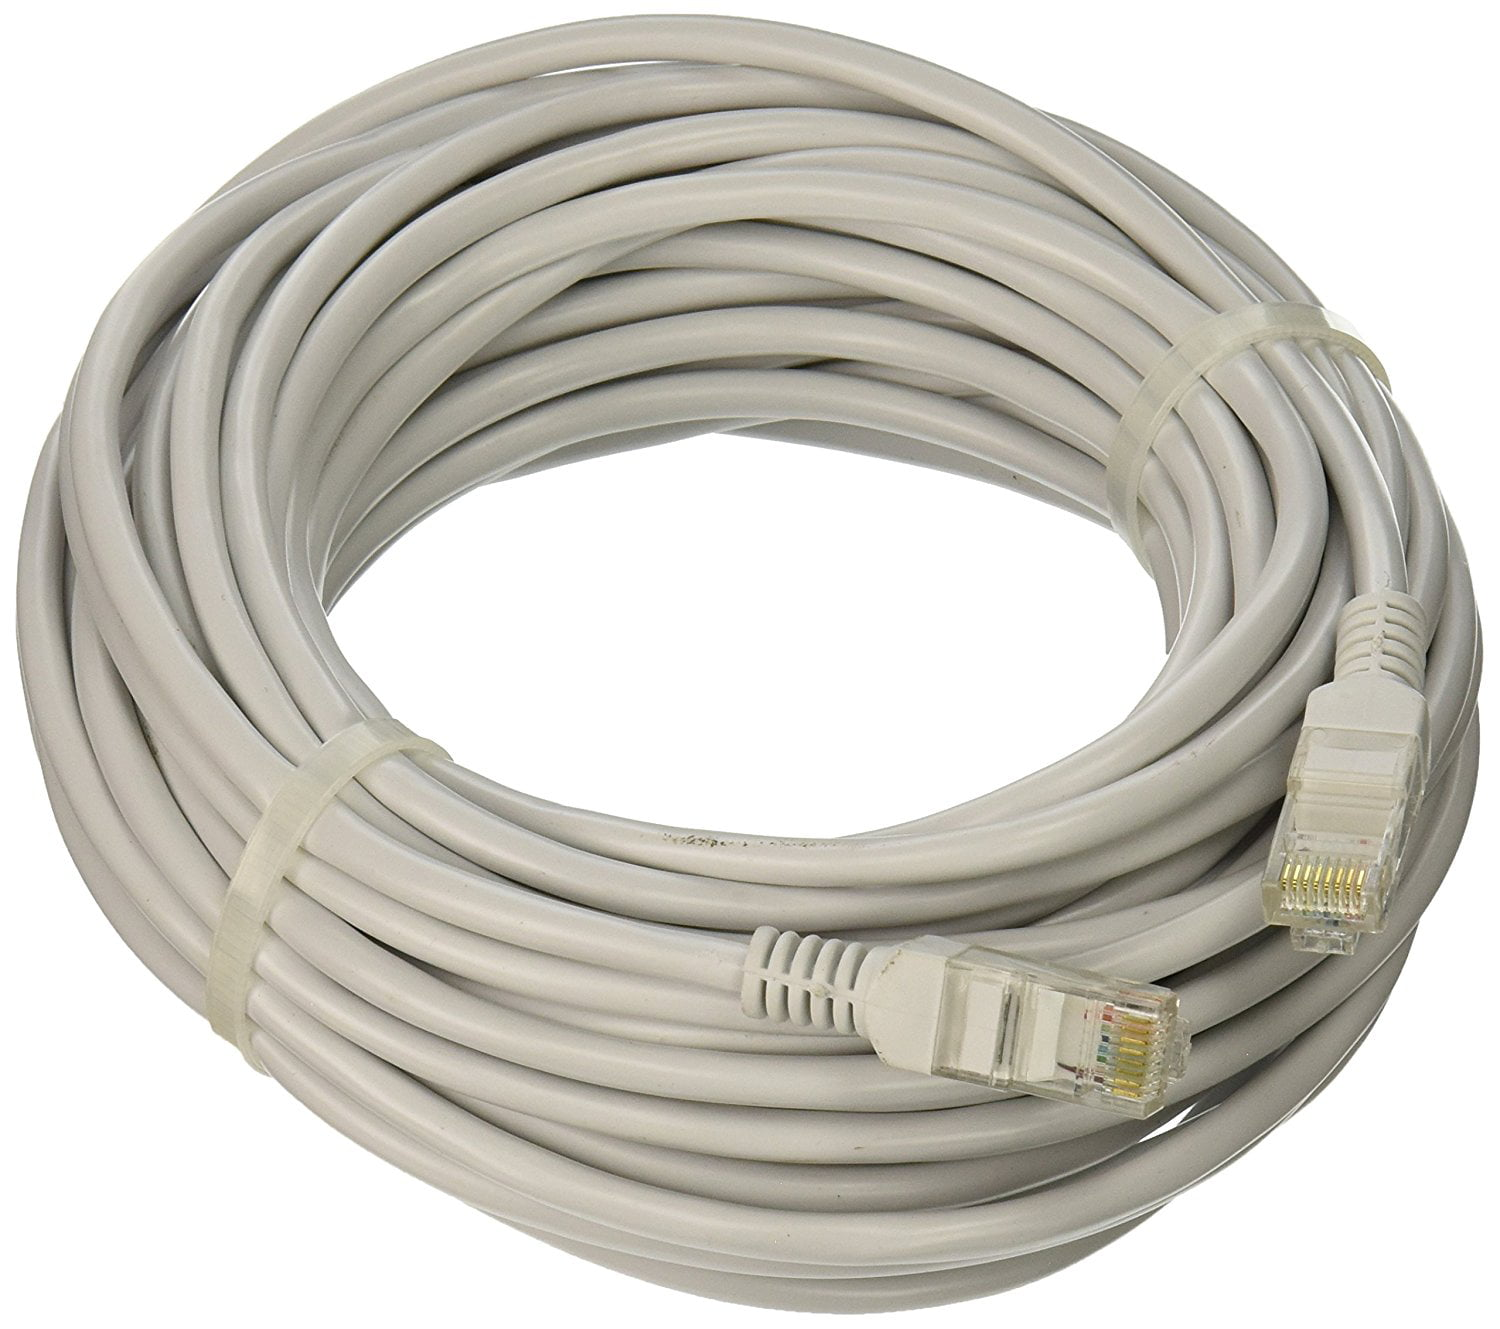 50/' FT CAT5 CAT5E RJ45 Network LAN Patch Ethernet Cable Snagless Cord Grey Feet